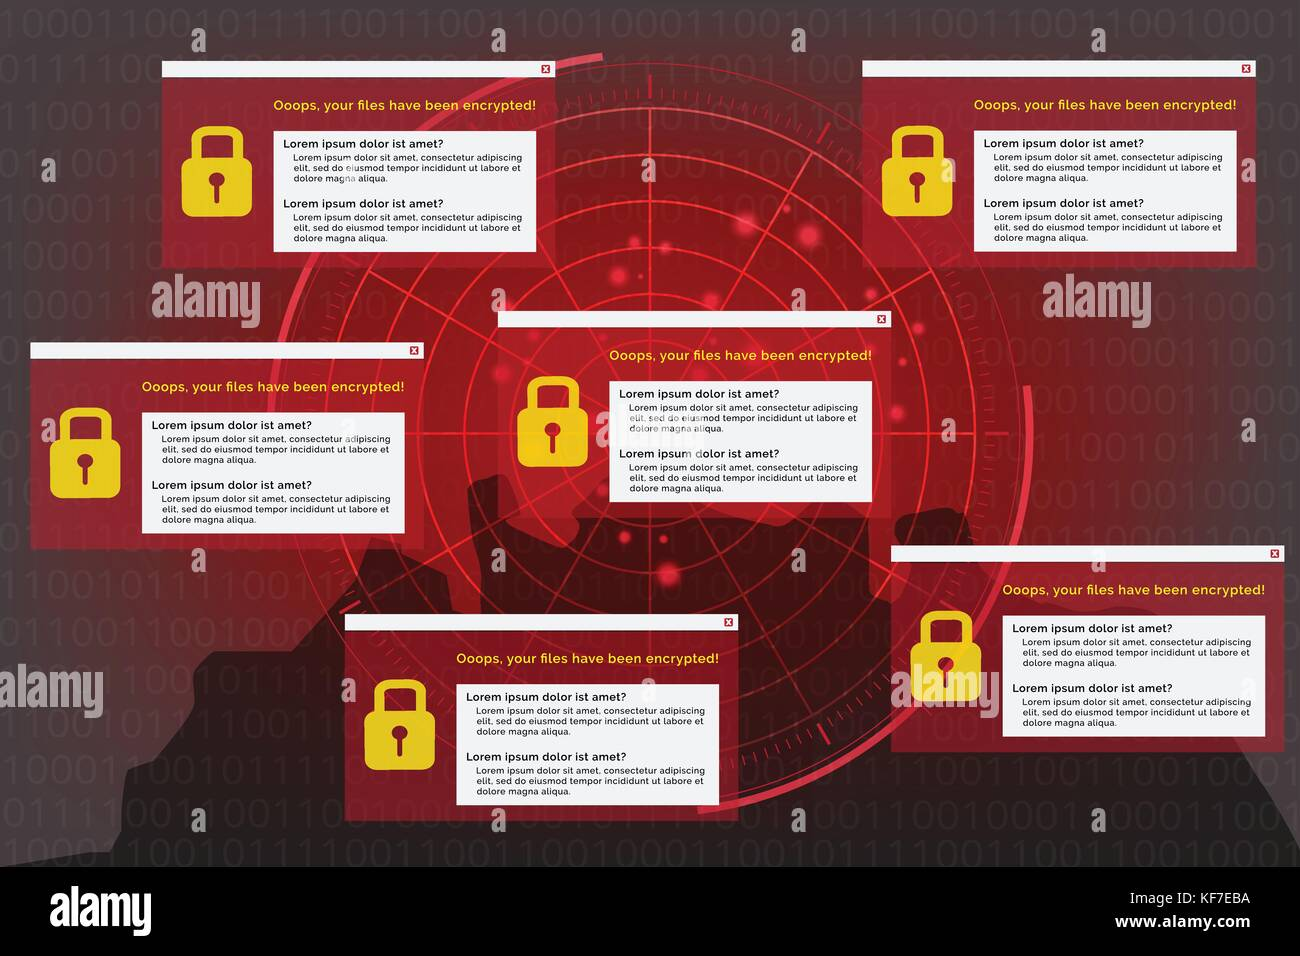 how to detect malware on computer